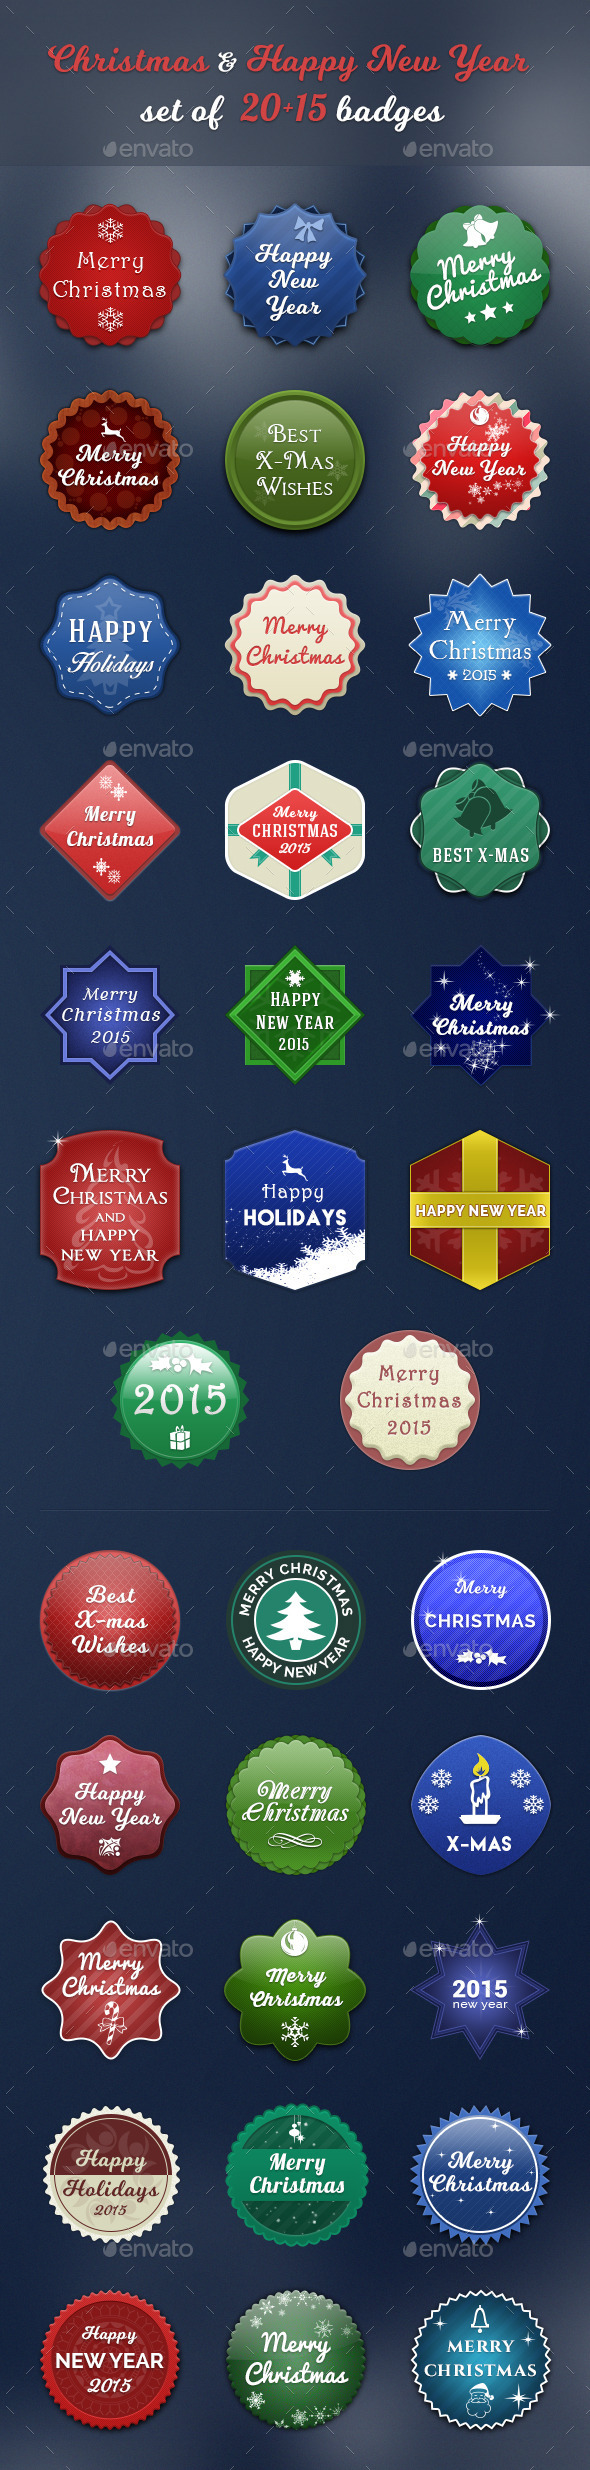 Christmas & Happy New Year set of 20+15 badges - Badges & Stickers Web Elements